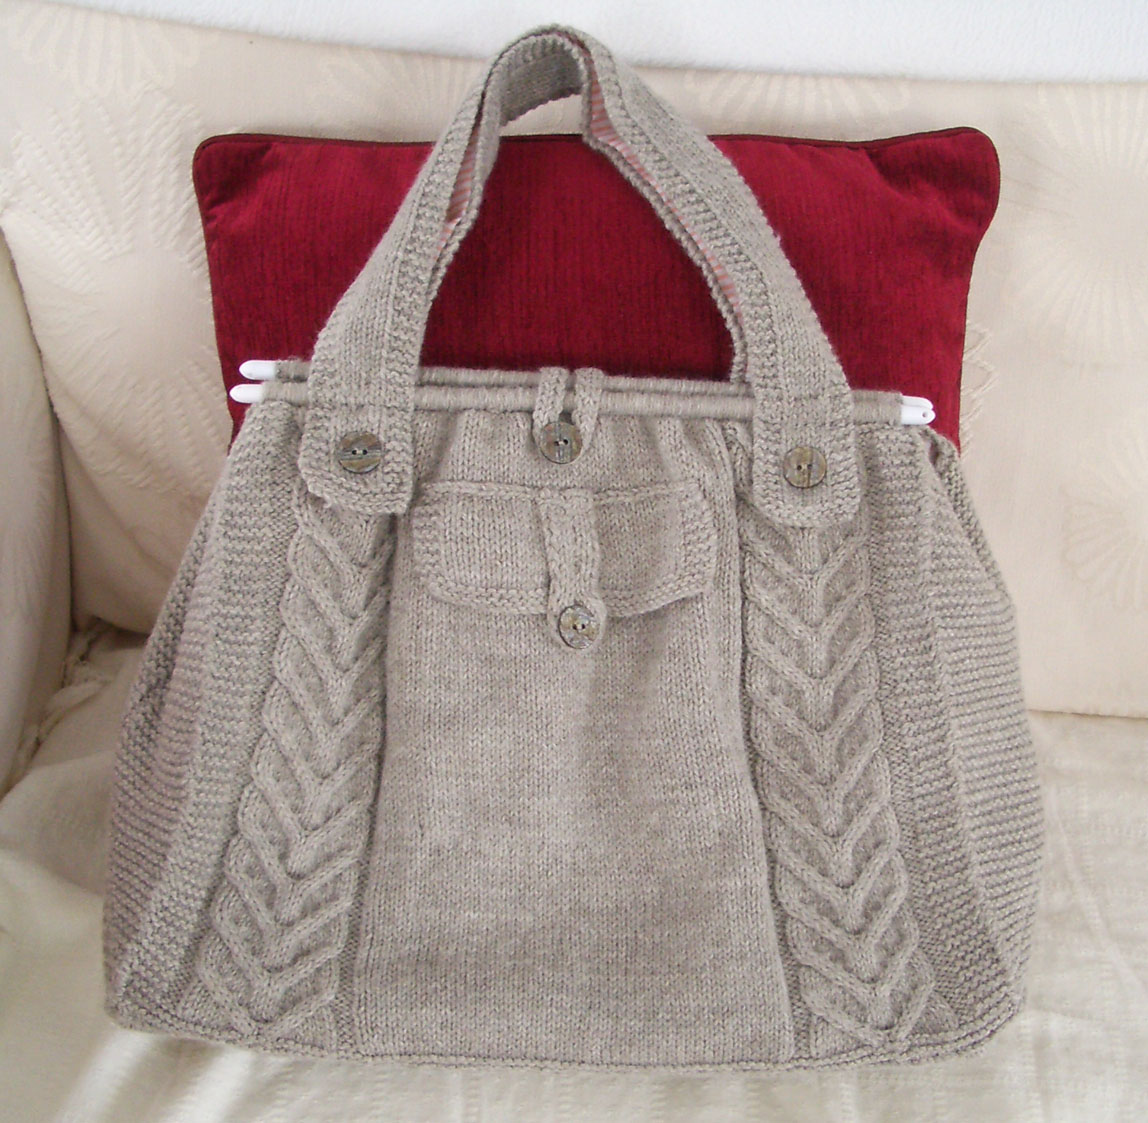 Knitted Bags Pattern : Knitted Creations: Cable Tote